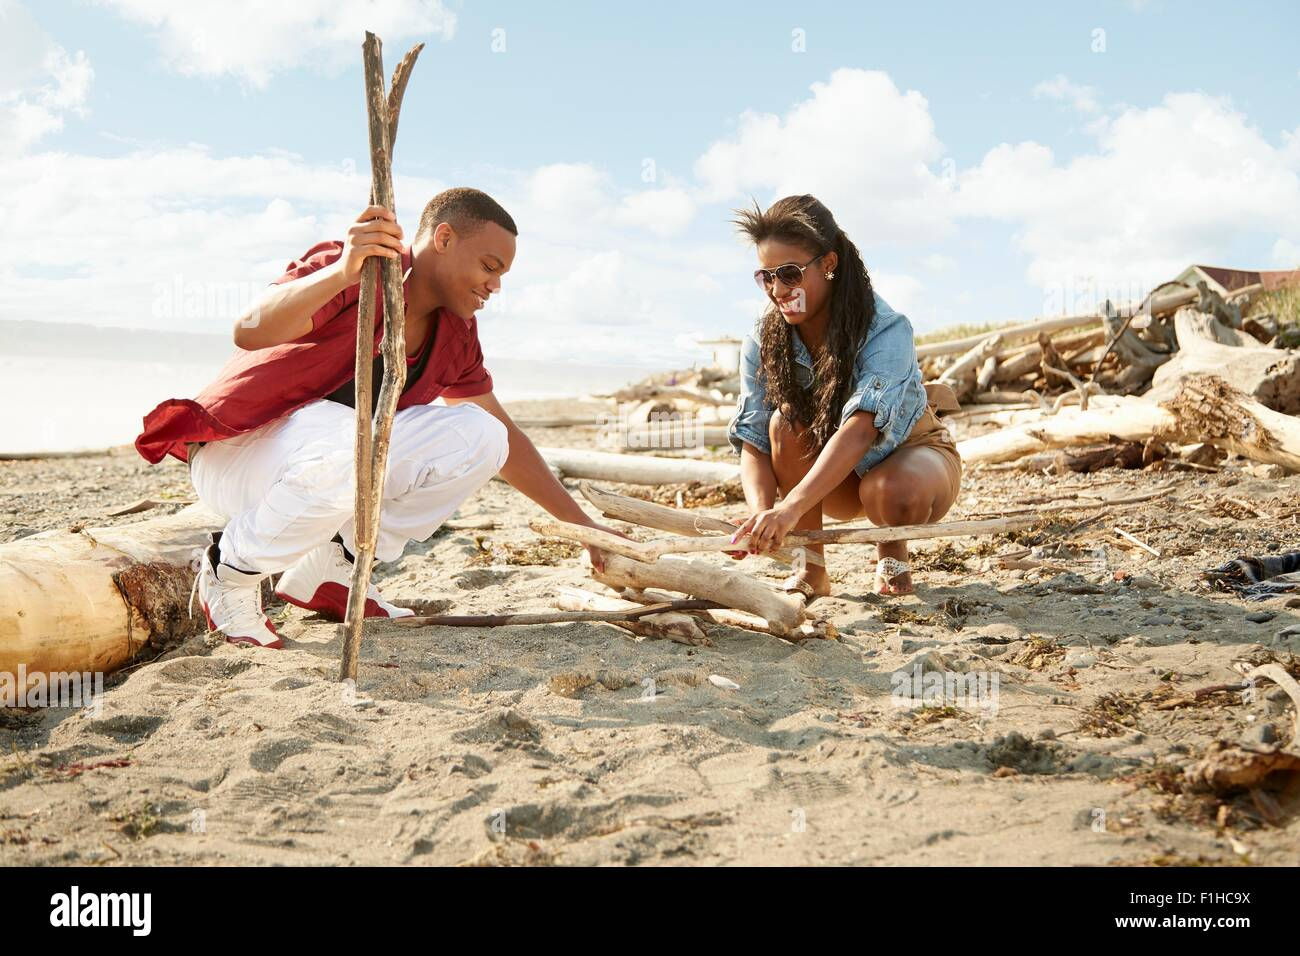 Young couple crouching on beach building campfire with drftwood - Stock Image